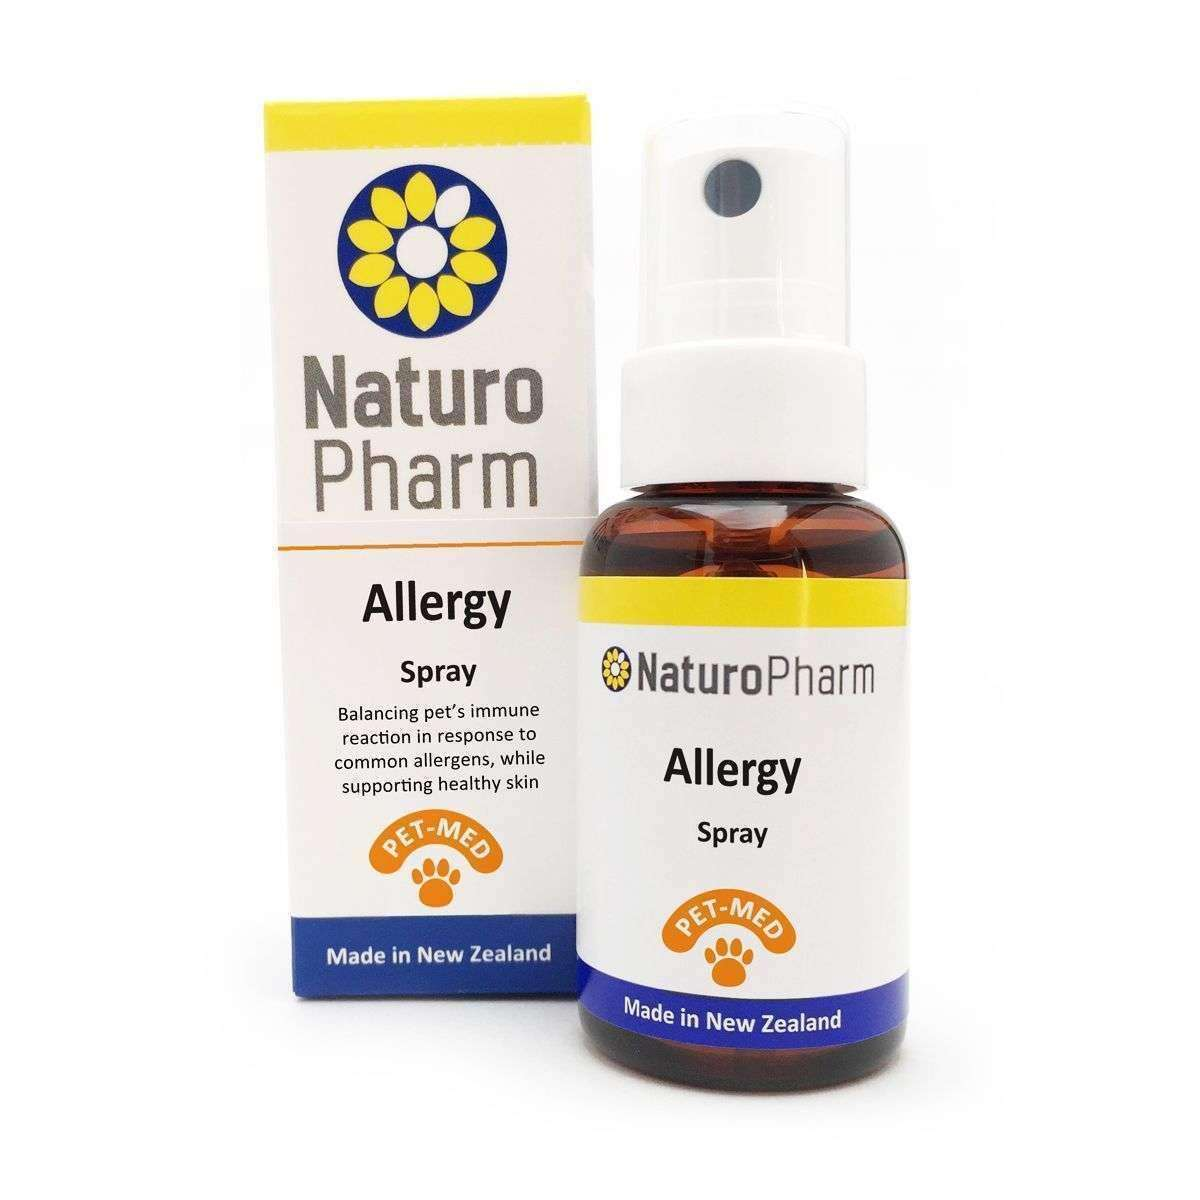 NaturoPharm Pet-Med Pet-Med Allergy Spray